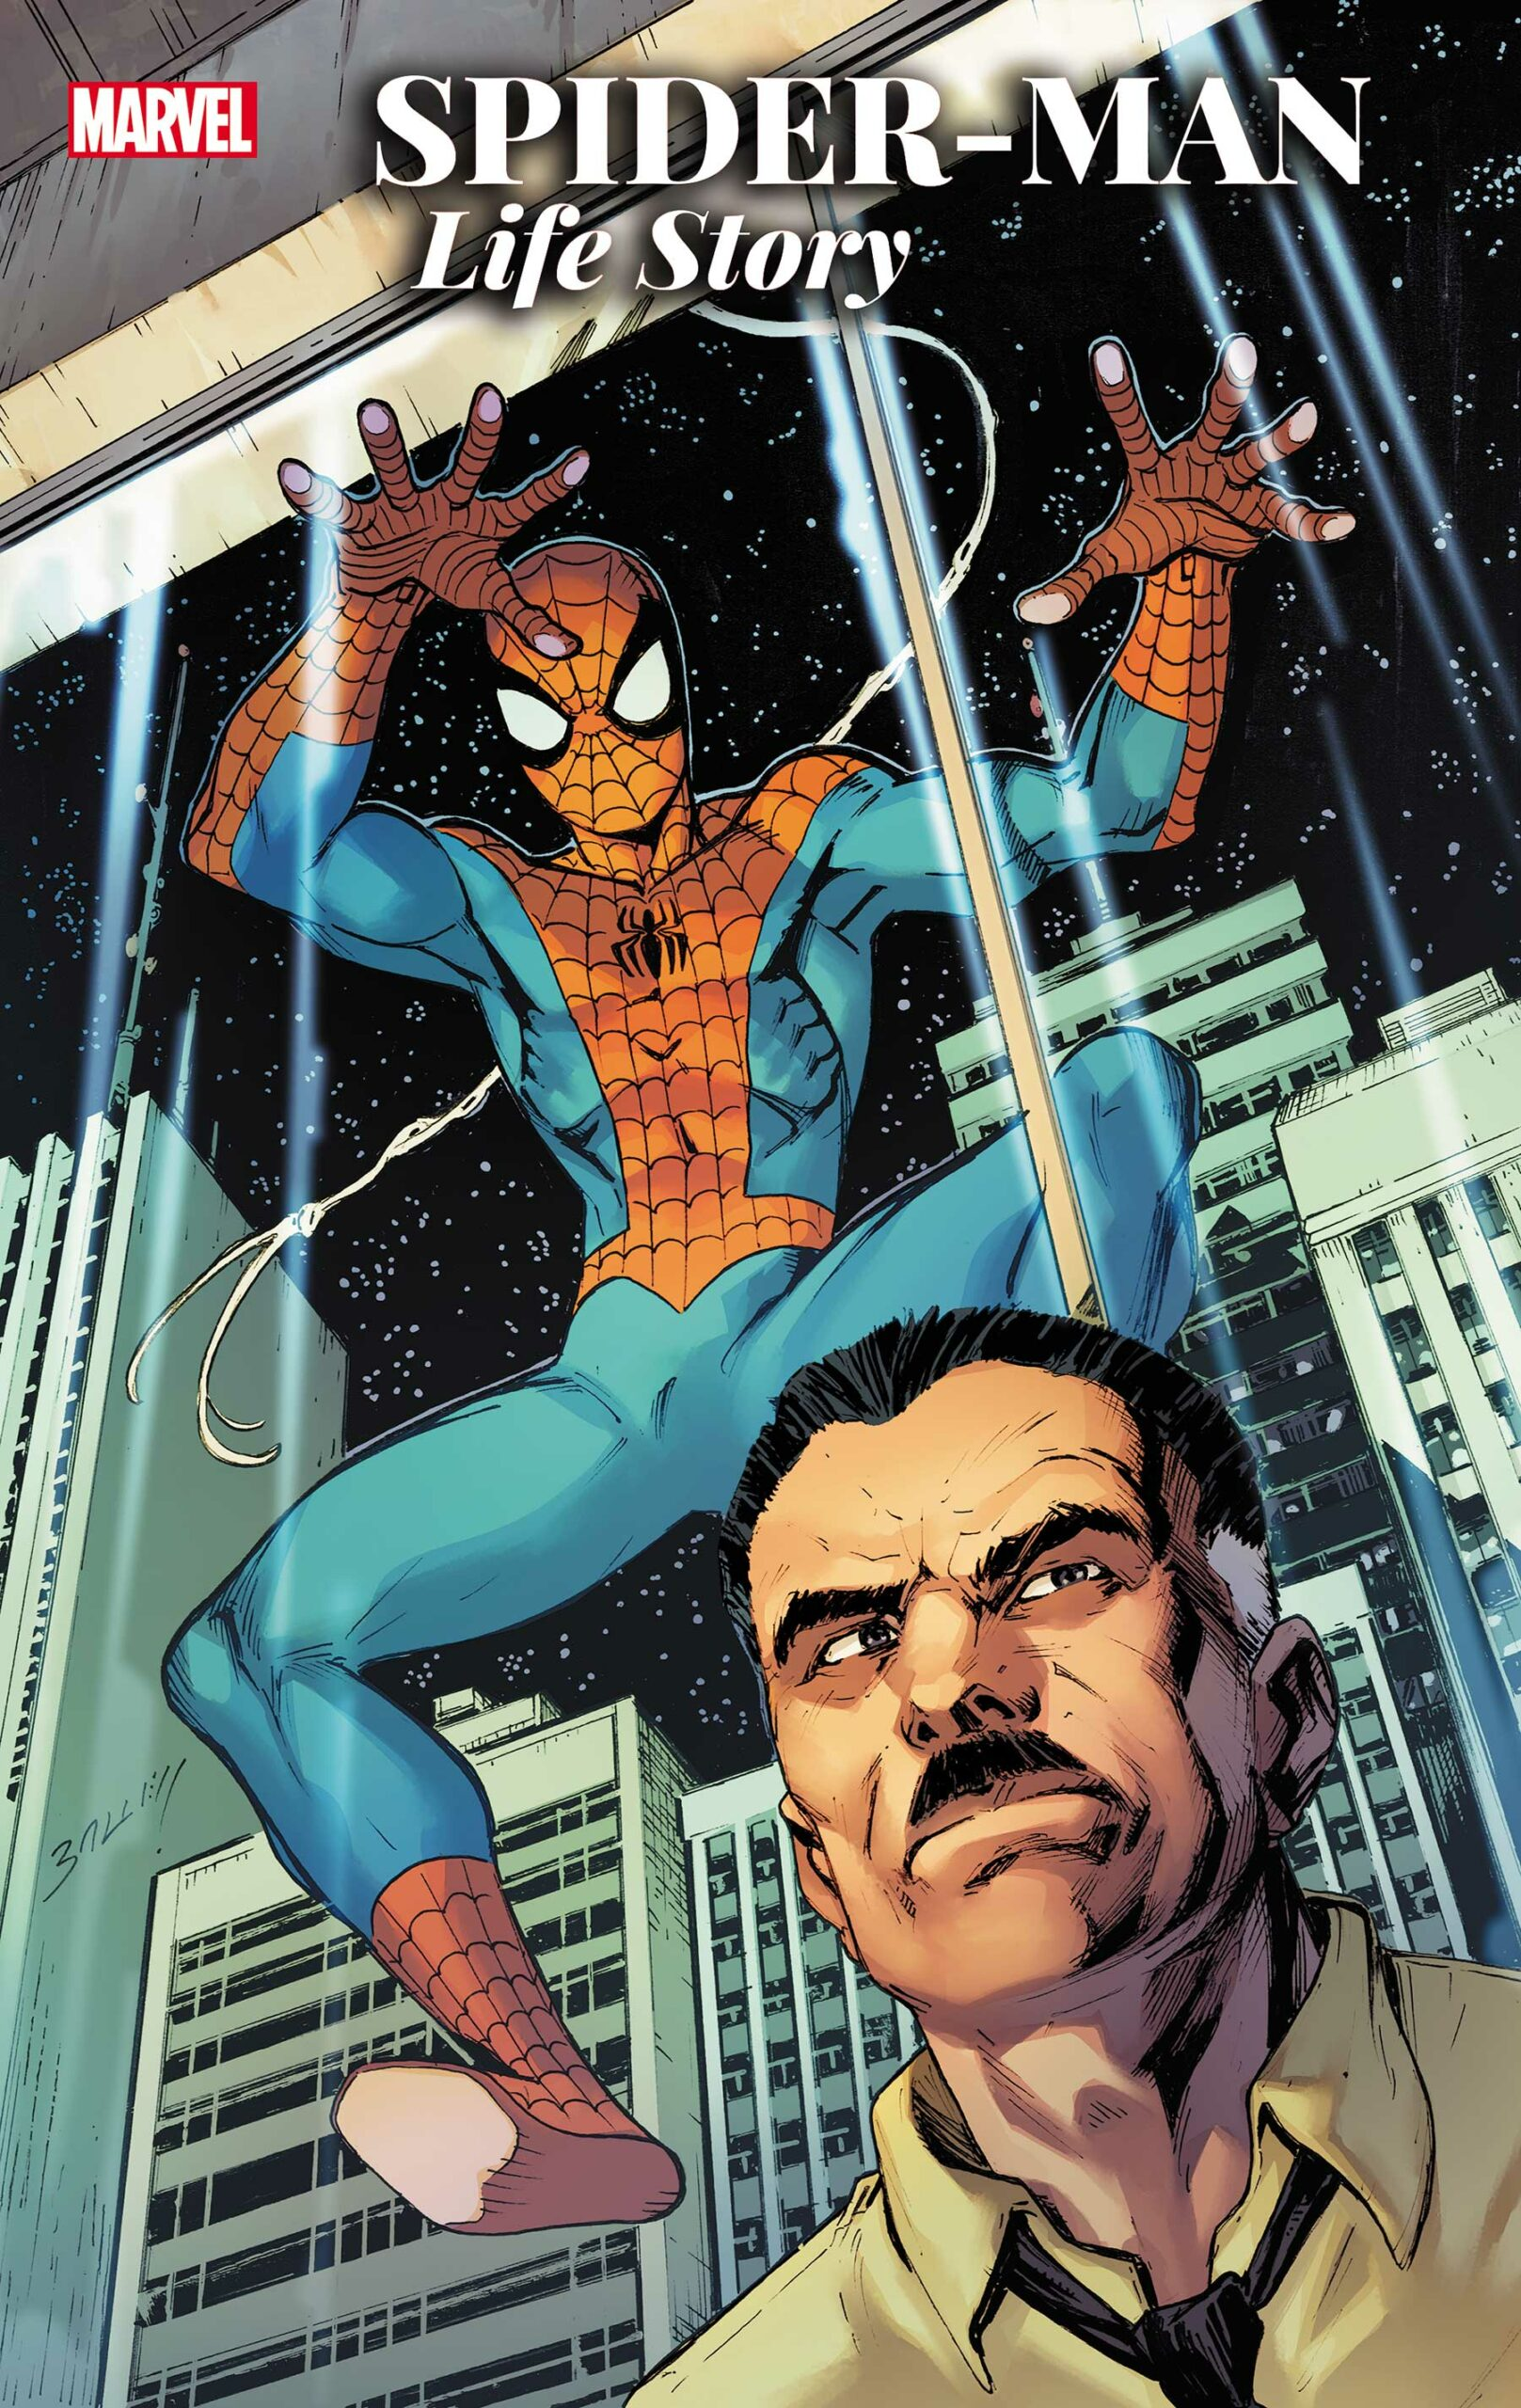 SPIDER-MAN: Life Story Annual #1 - Bagley Variant Cover